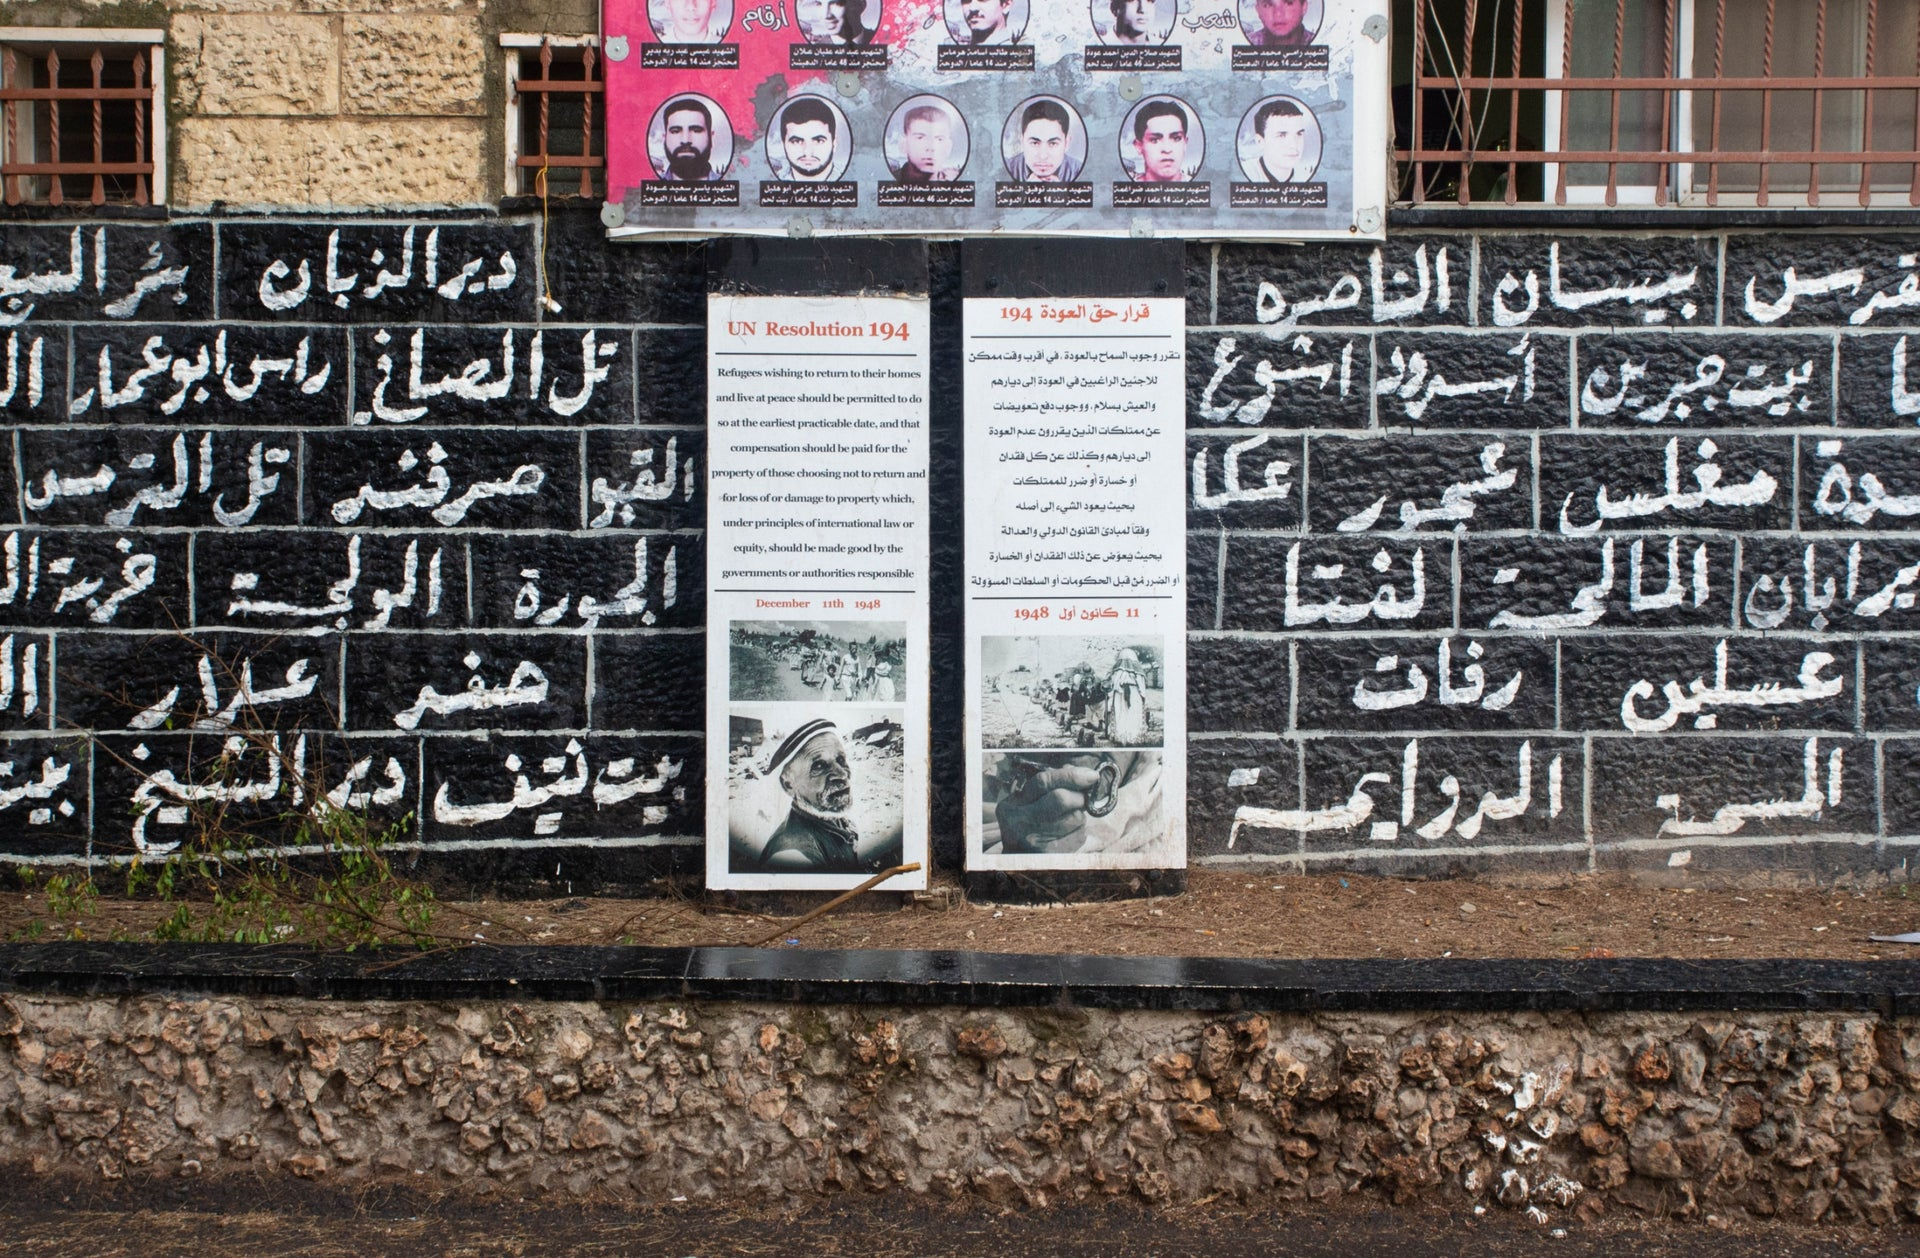 he exterior of a small community center in Deheisheh, featuring a list of villages Palestinians left or were expelled from during the Israeli War of Independence in 1948.